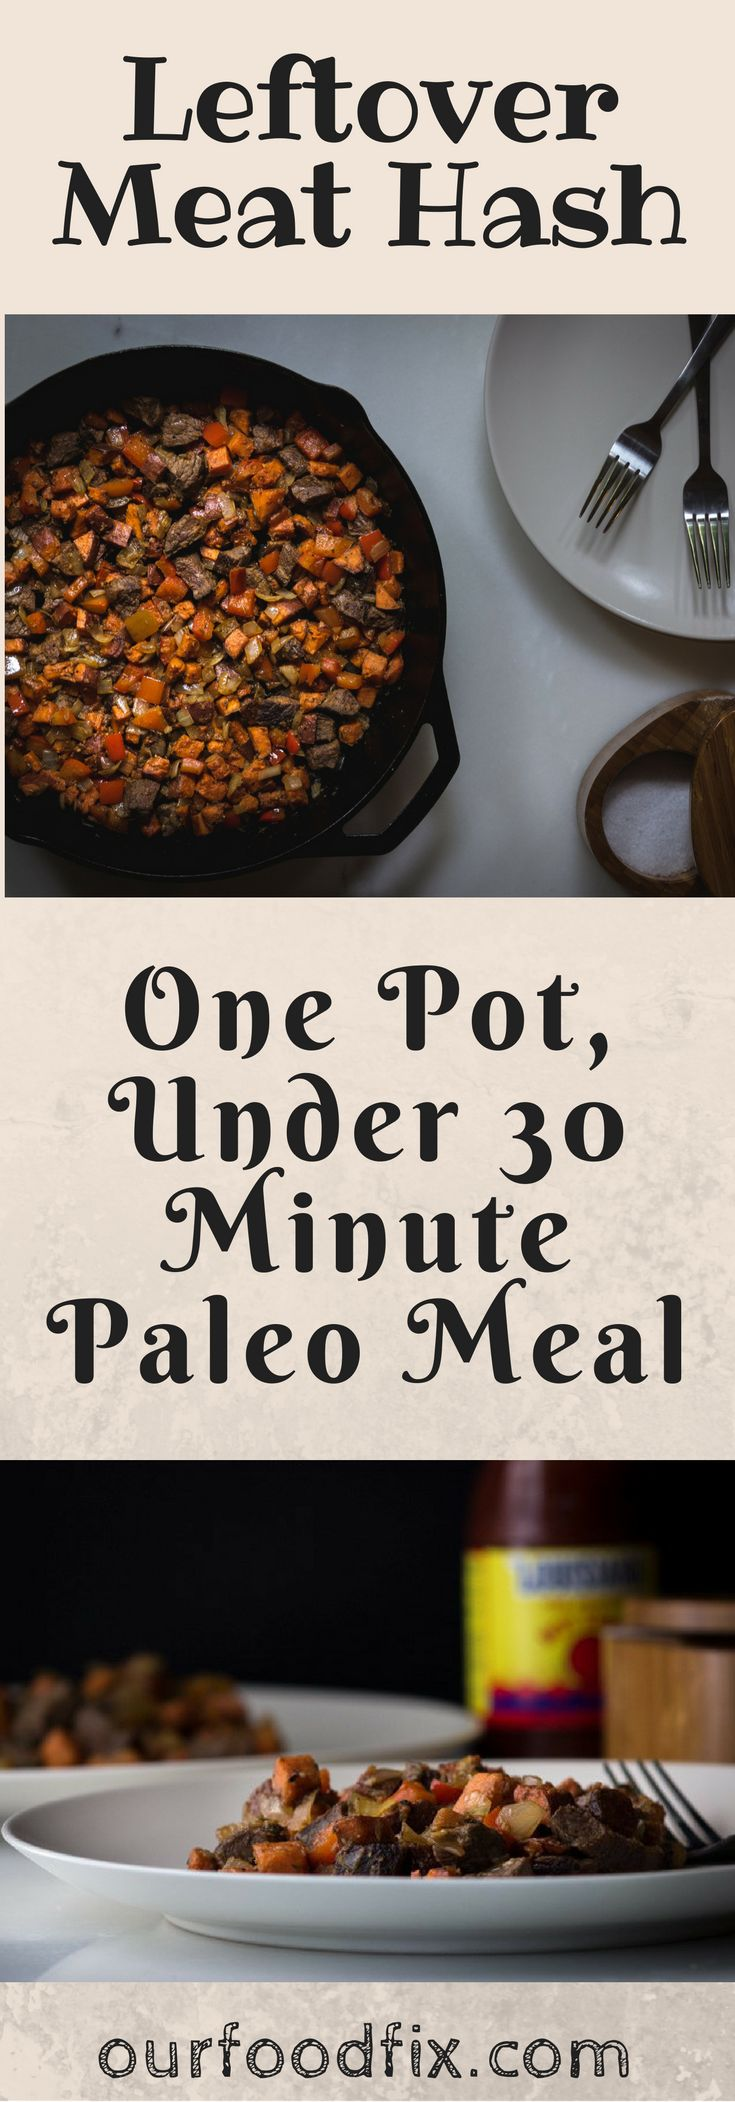 Perfect for a quick weeknight dinner, this Whole30 compliant one-pan meal is savory, smoky, and satisfying.